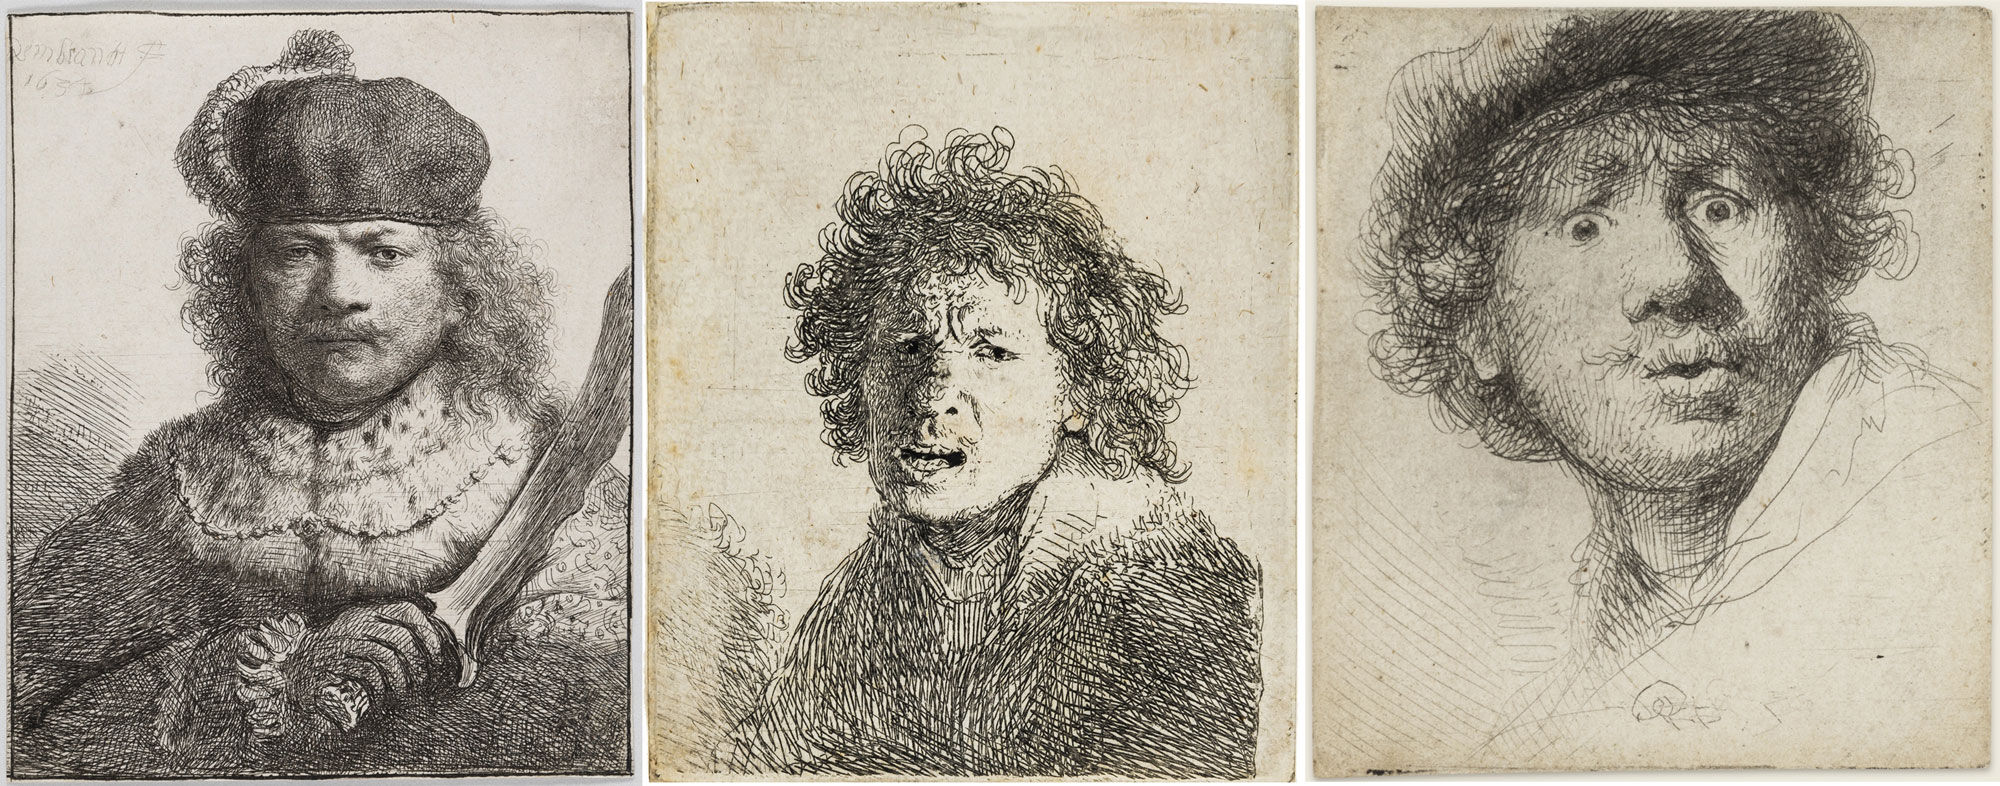 From left to right: Rembrandt van Rijn, Self-Portrait with Raised Sabre, 1634; Self-Portrait, Open-Mouthed, 1630; Self-portrait with Beret, Wide-Eyed, 1630. Courtesy of the Rijksmuseum.